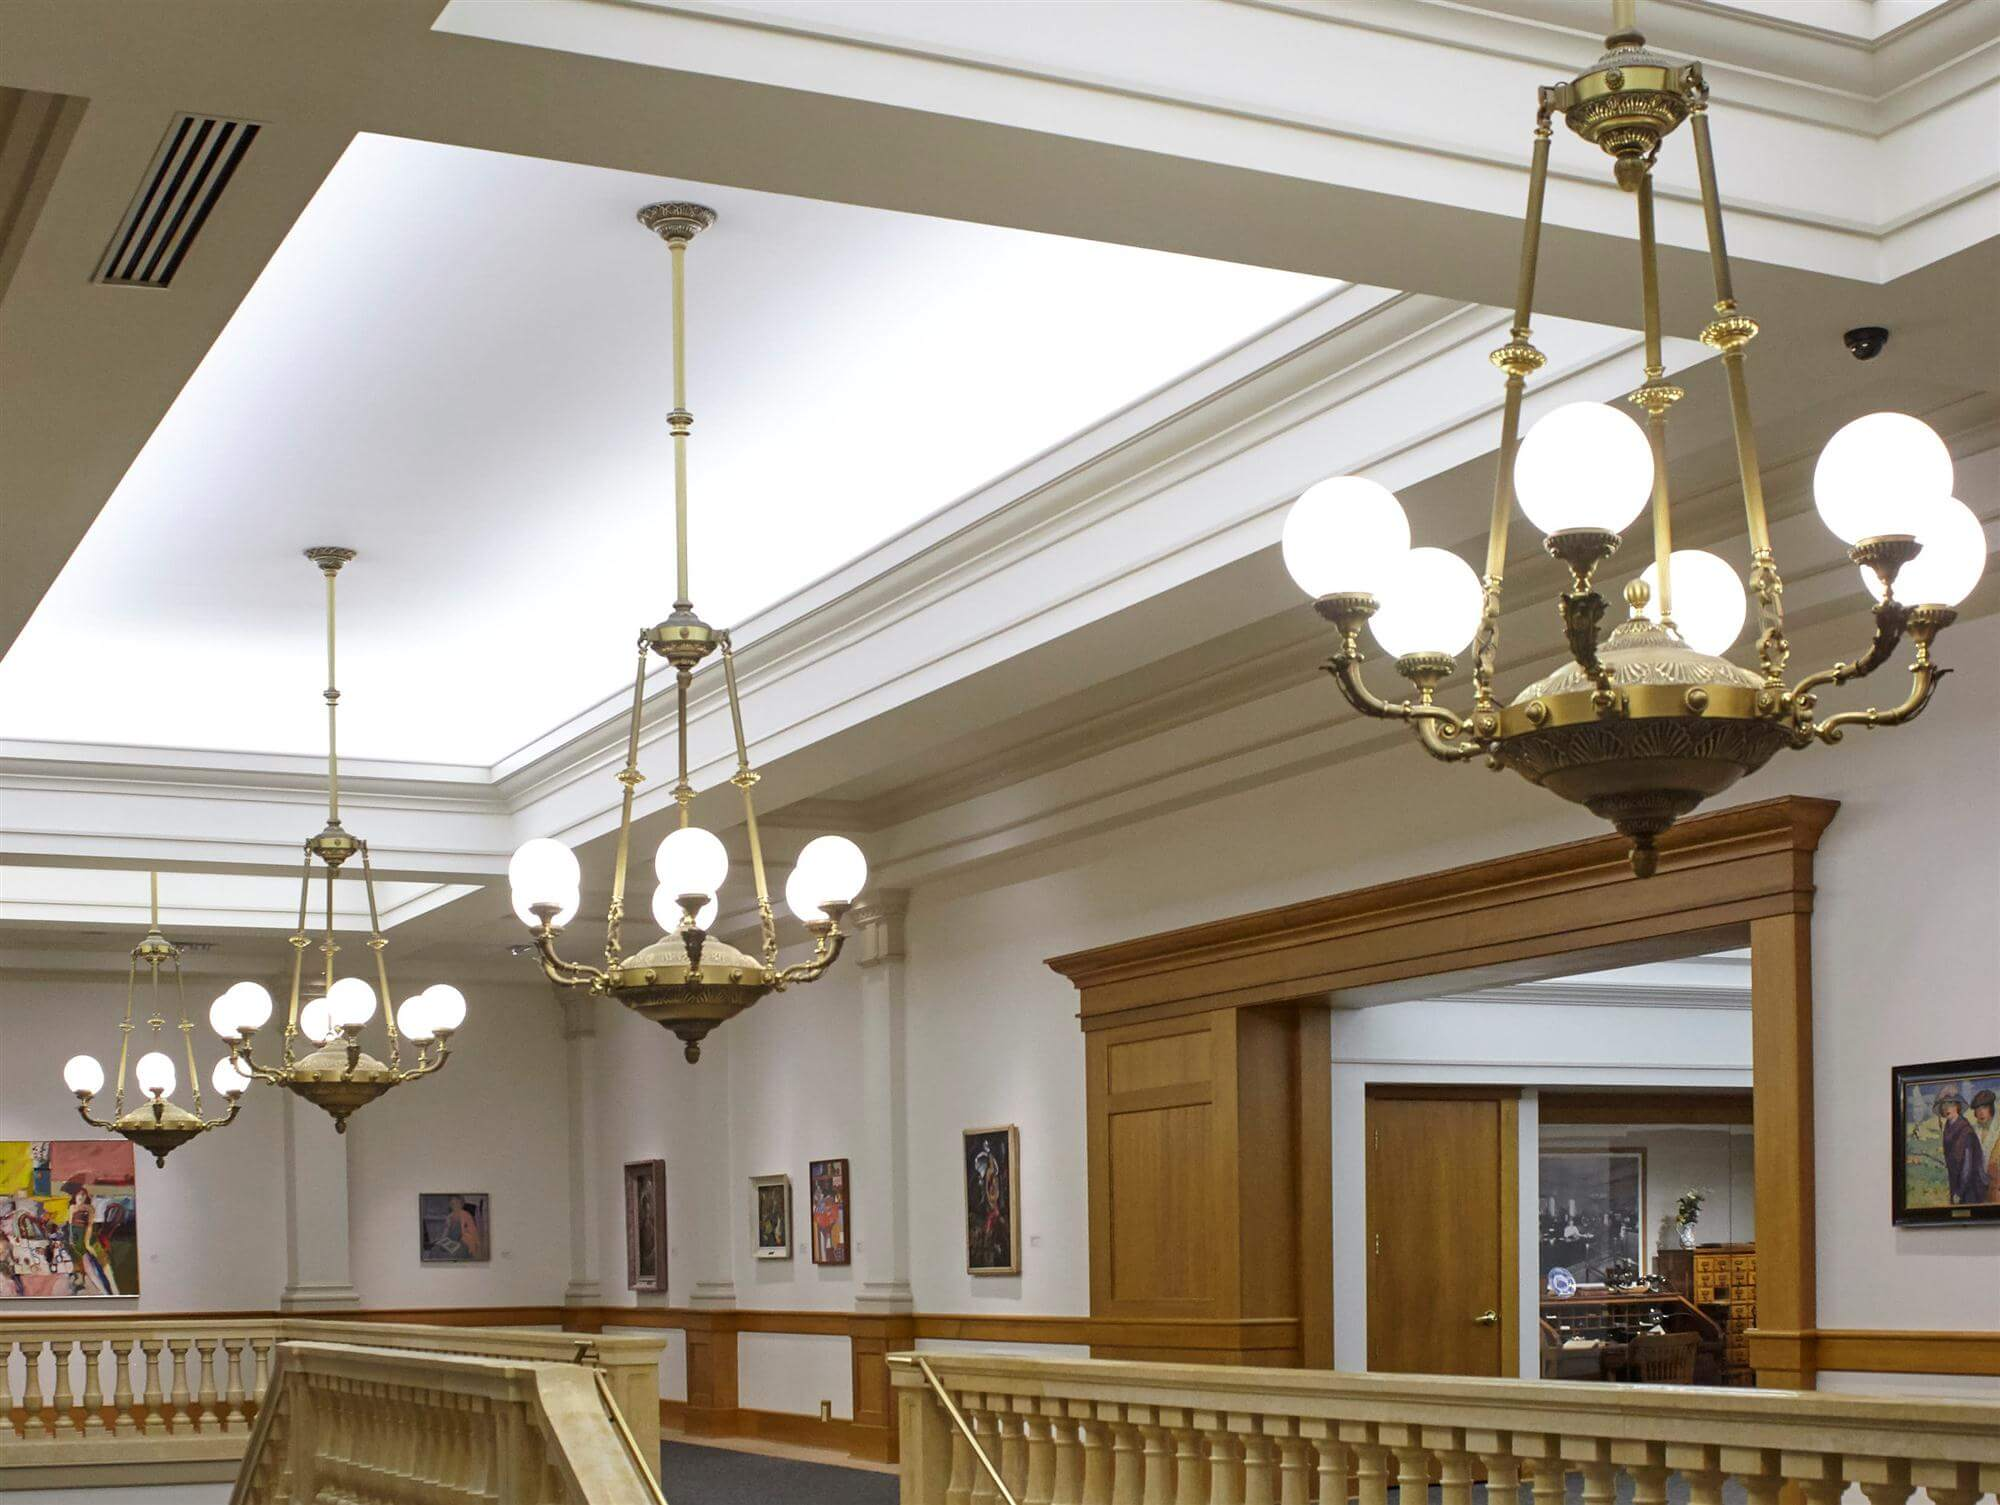 Historic Reproduction Chandeliers for Library